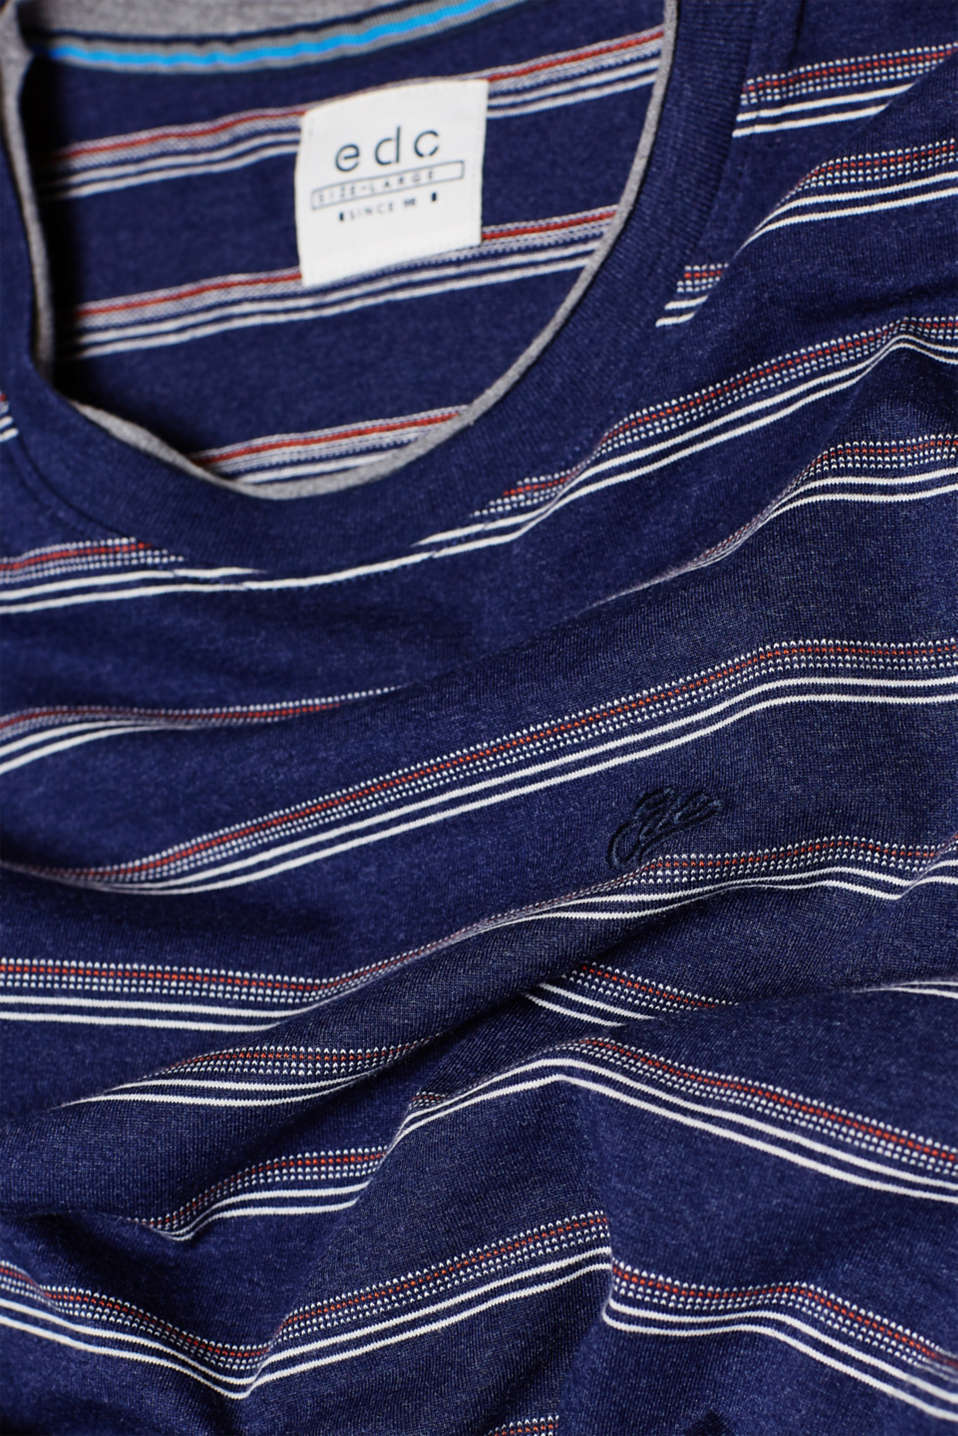 Jacquard top with textured stripes, made of jersey